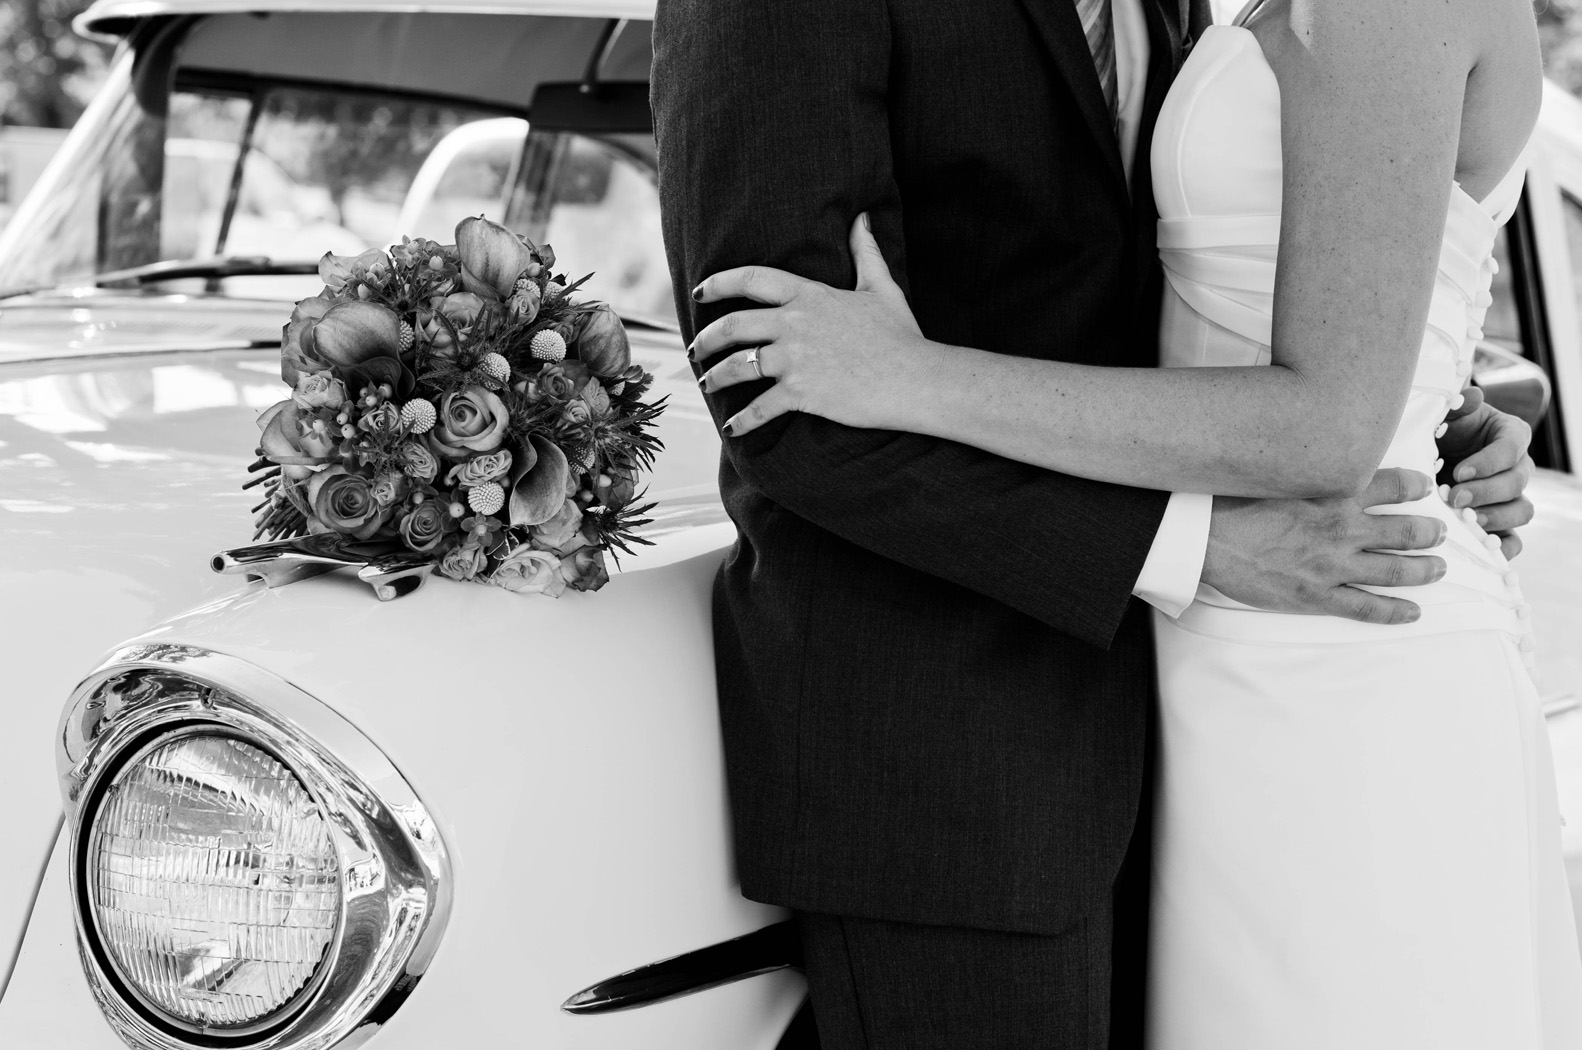 Bride and Groom with old car, black and white